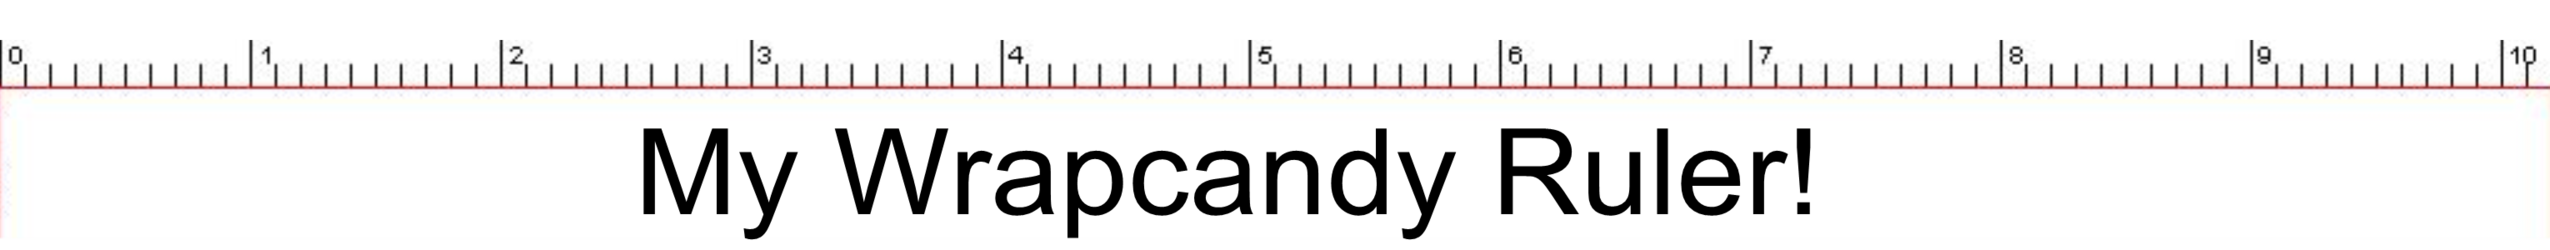 wrapcandy ruler 1_tenths.png